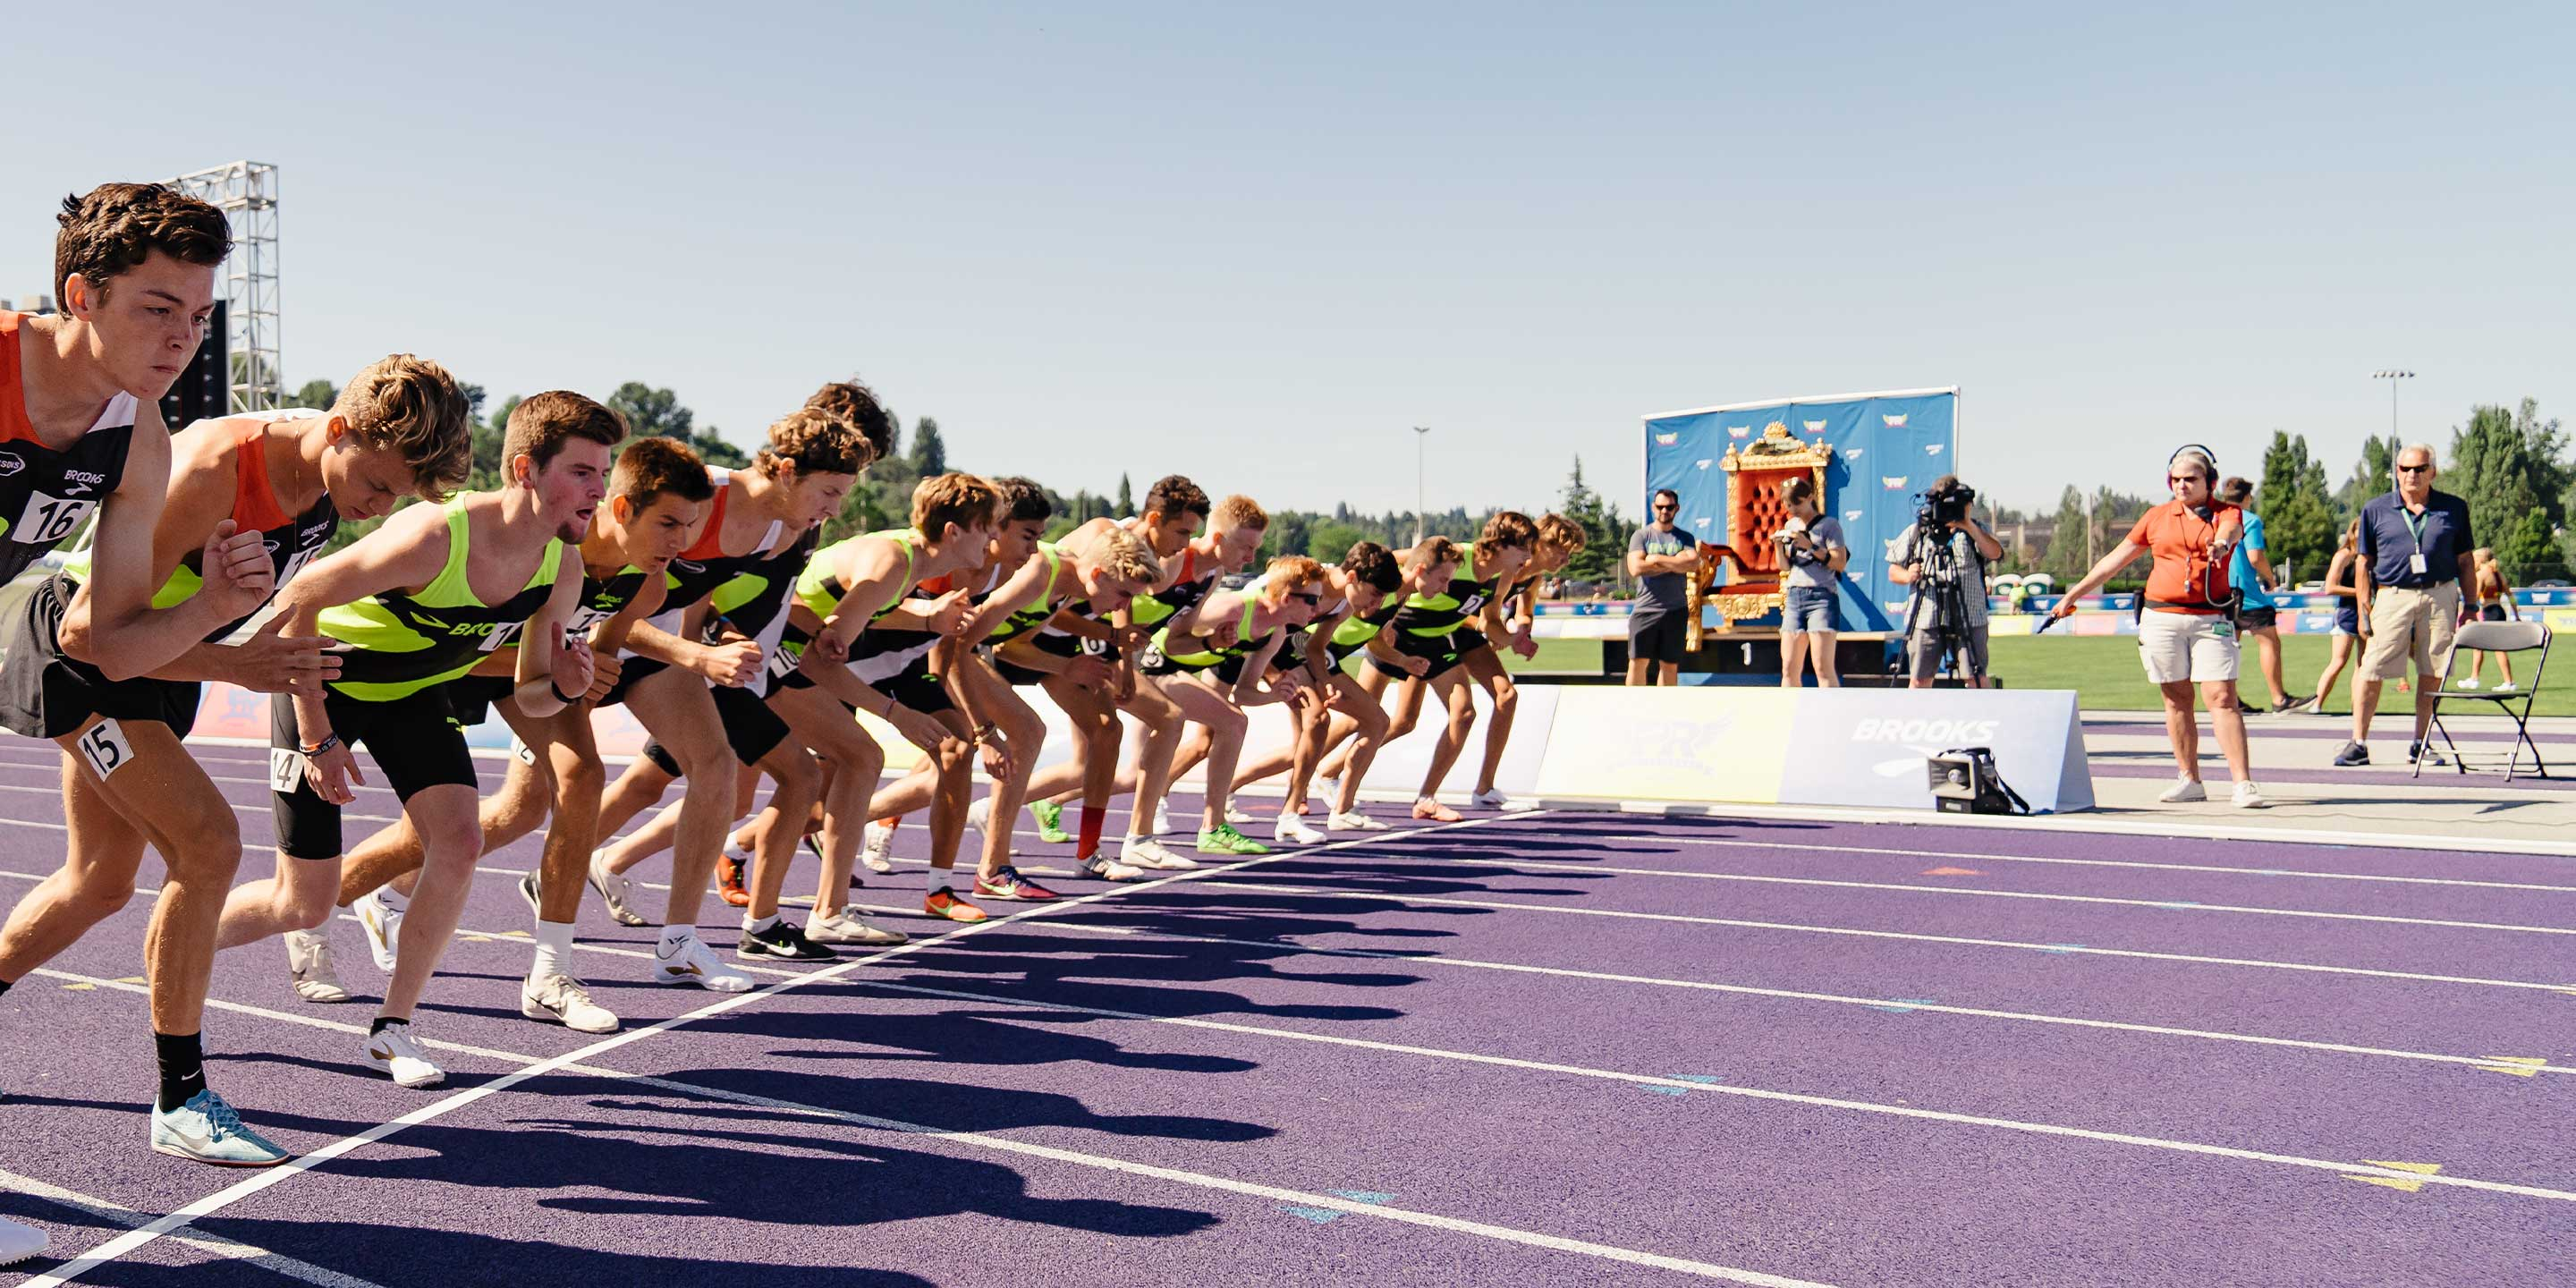 Athletes lined up on the track on a sunny day